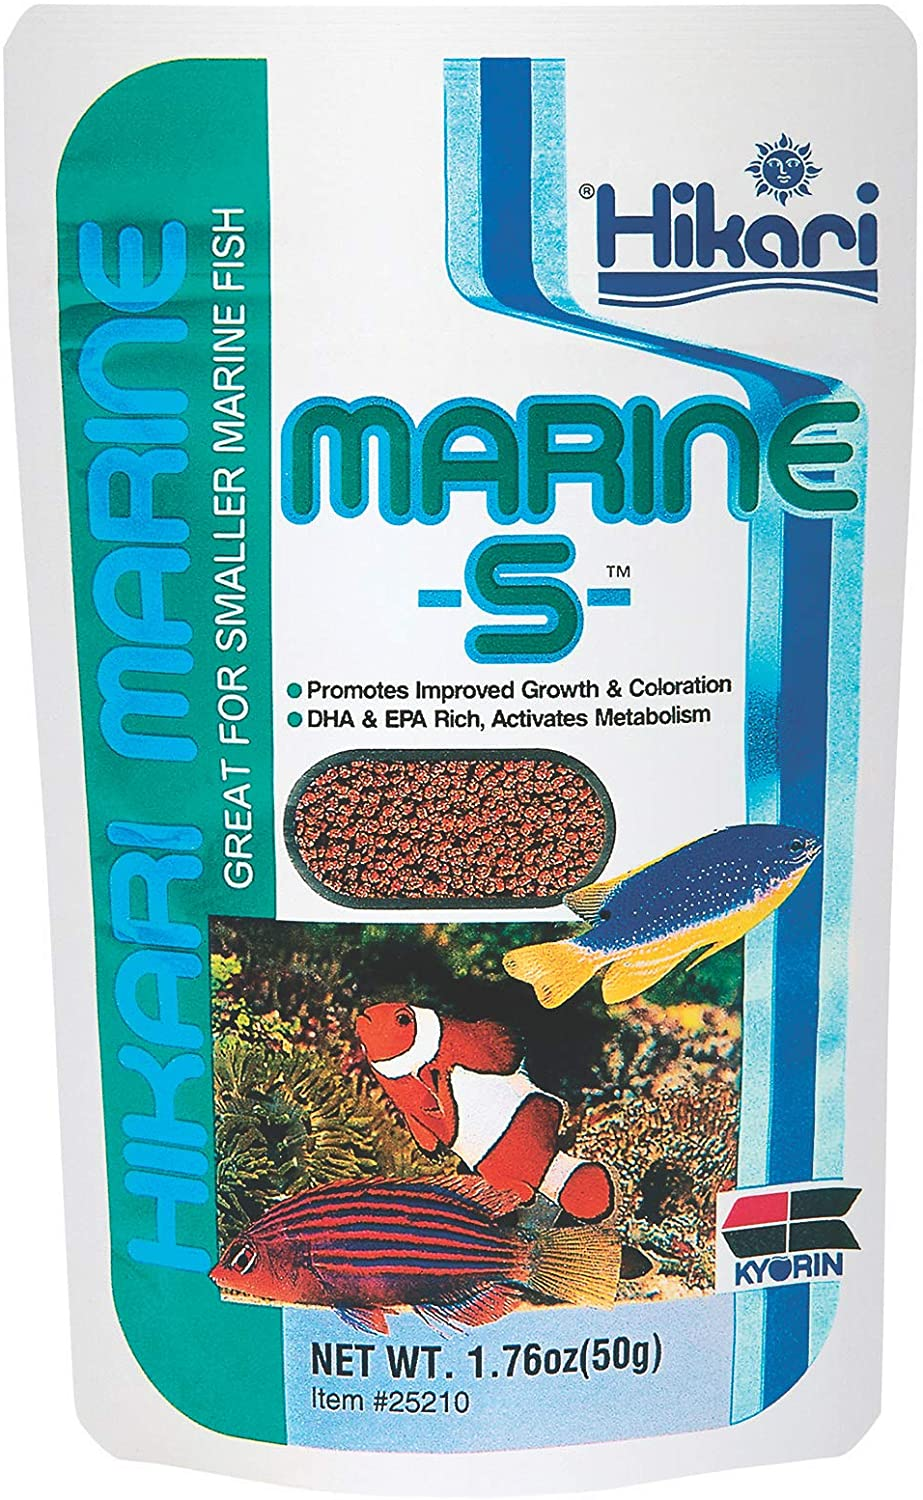 Hikari Marine-S Pellets Fish Food for Smaller Marine Fish